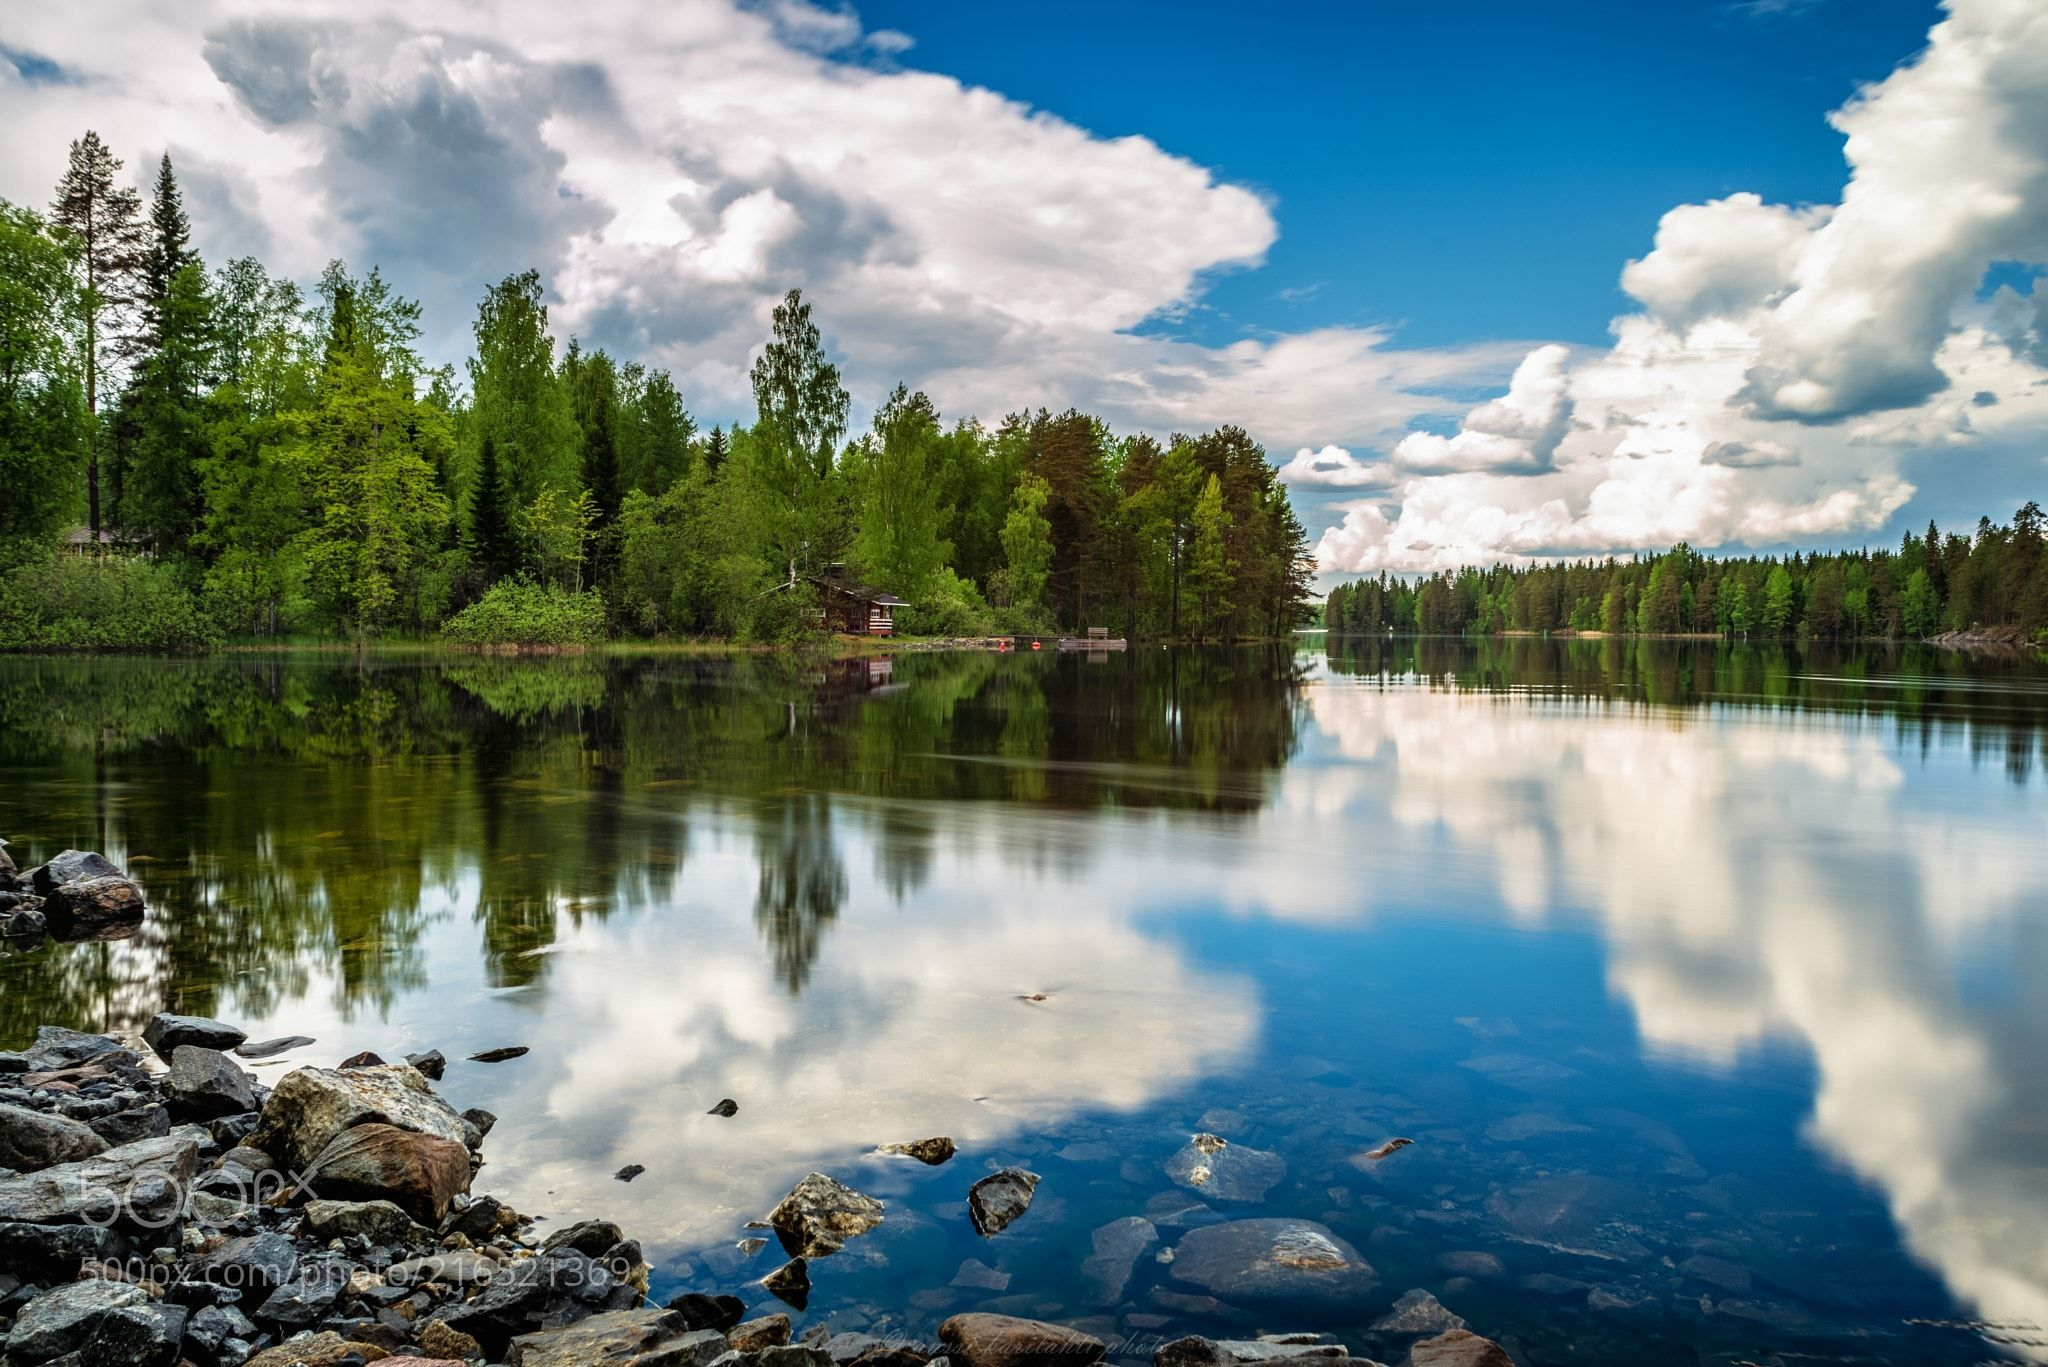 Summer Clouds (Anssi  karilahti / Heinävesi / Finland) #NIKON D600 #landscape #photo #nature